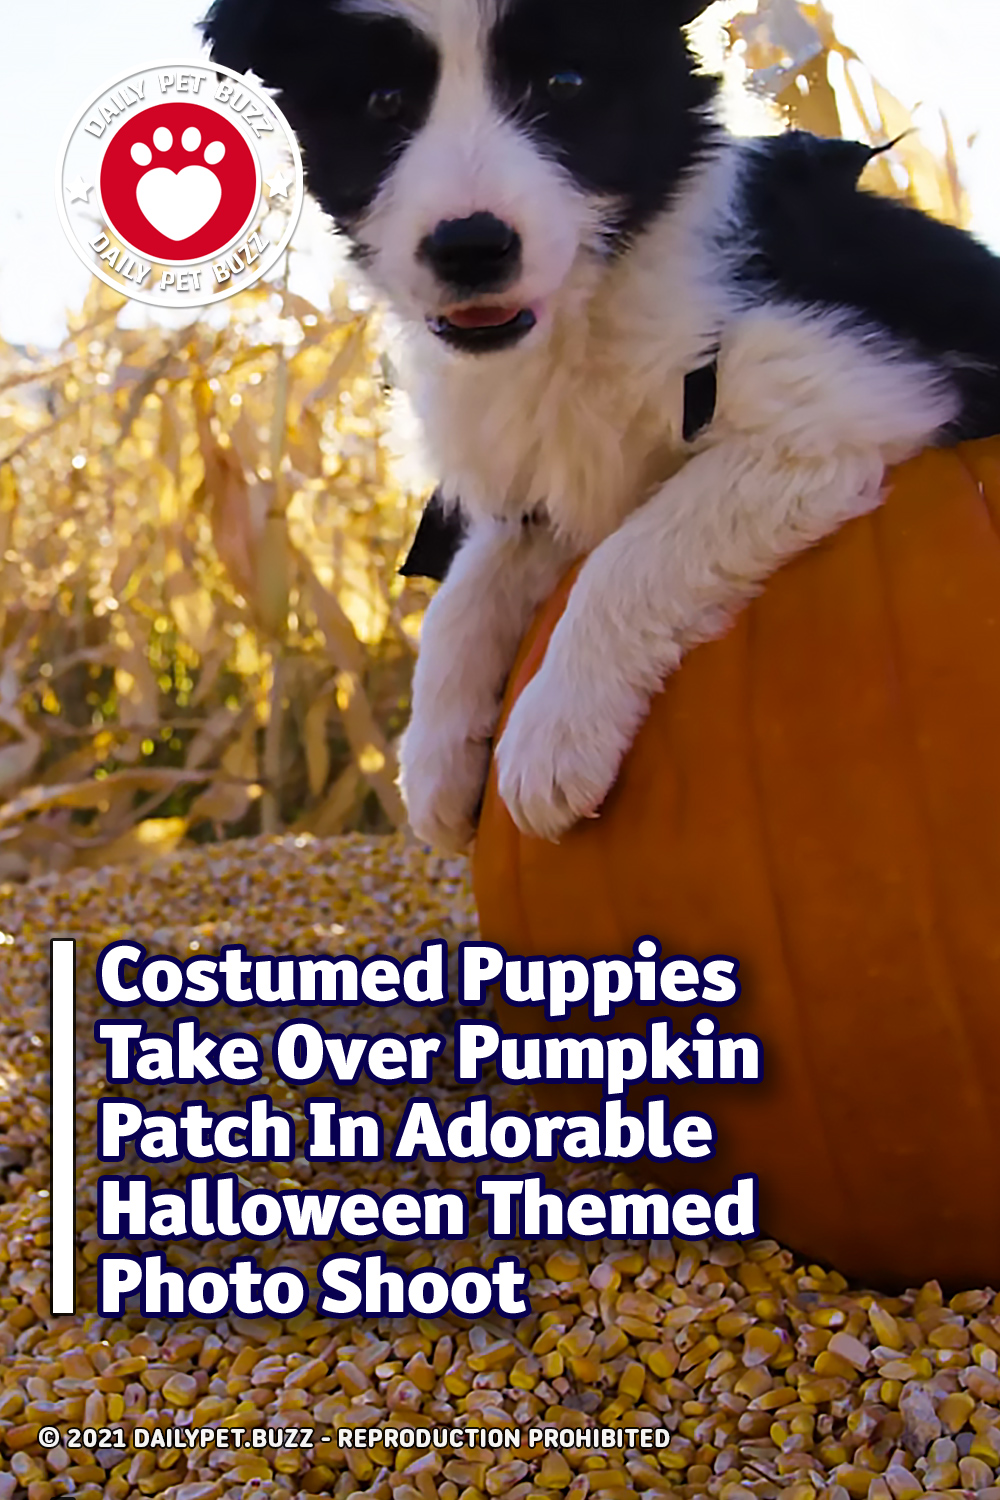 Costumed Puppies Take Over Pumpkin Patch In Adorable Halloween Themed Photo Shoot